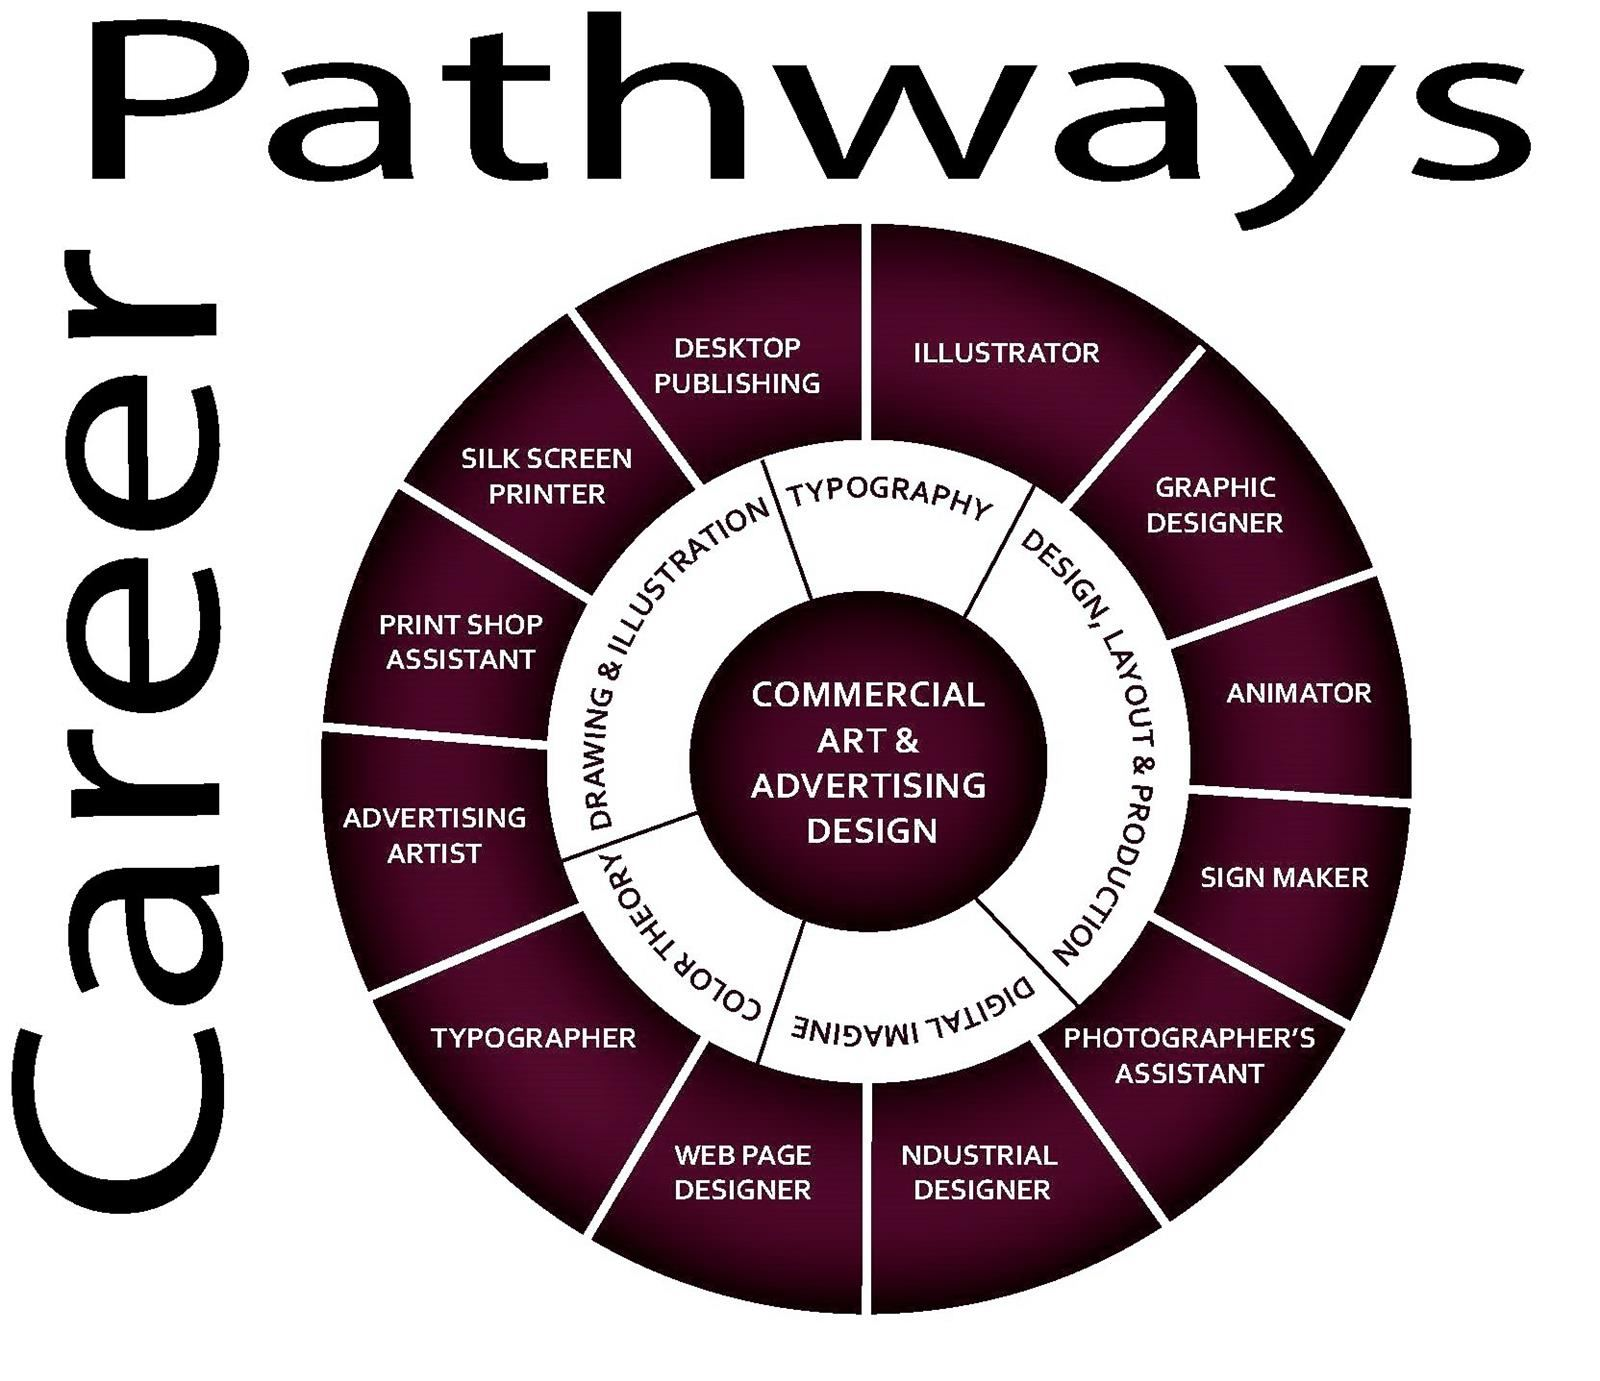 Career Pathway Wheel for Commercial Art & Advertising Design